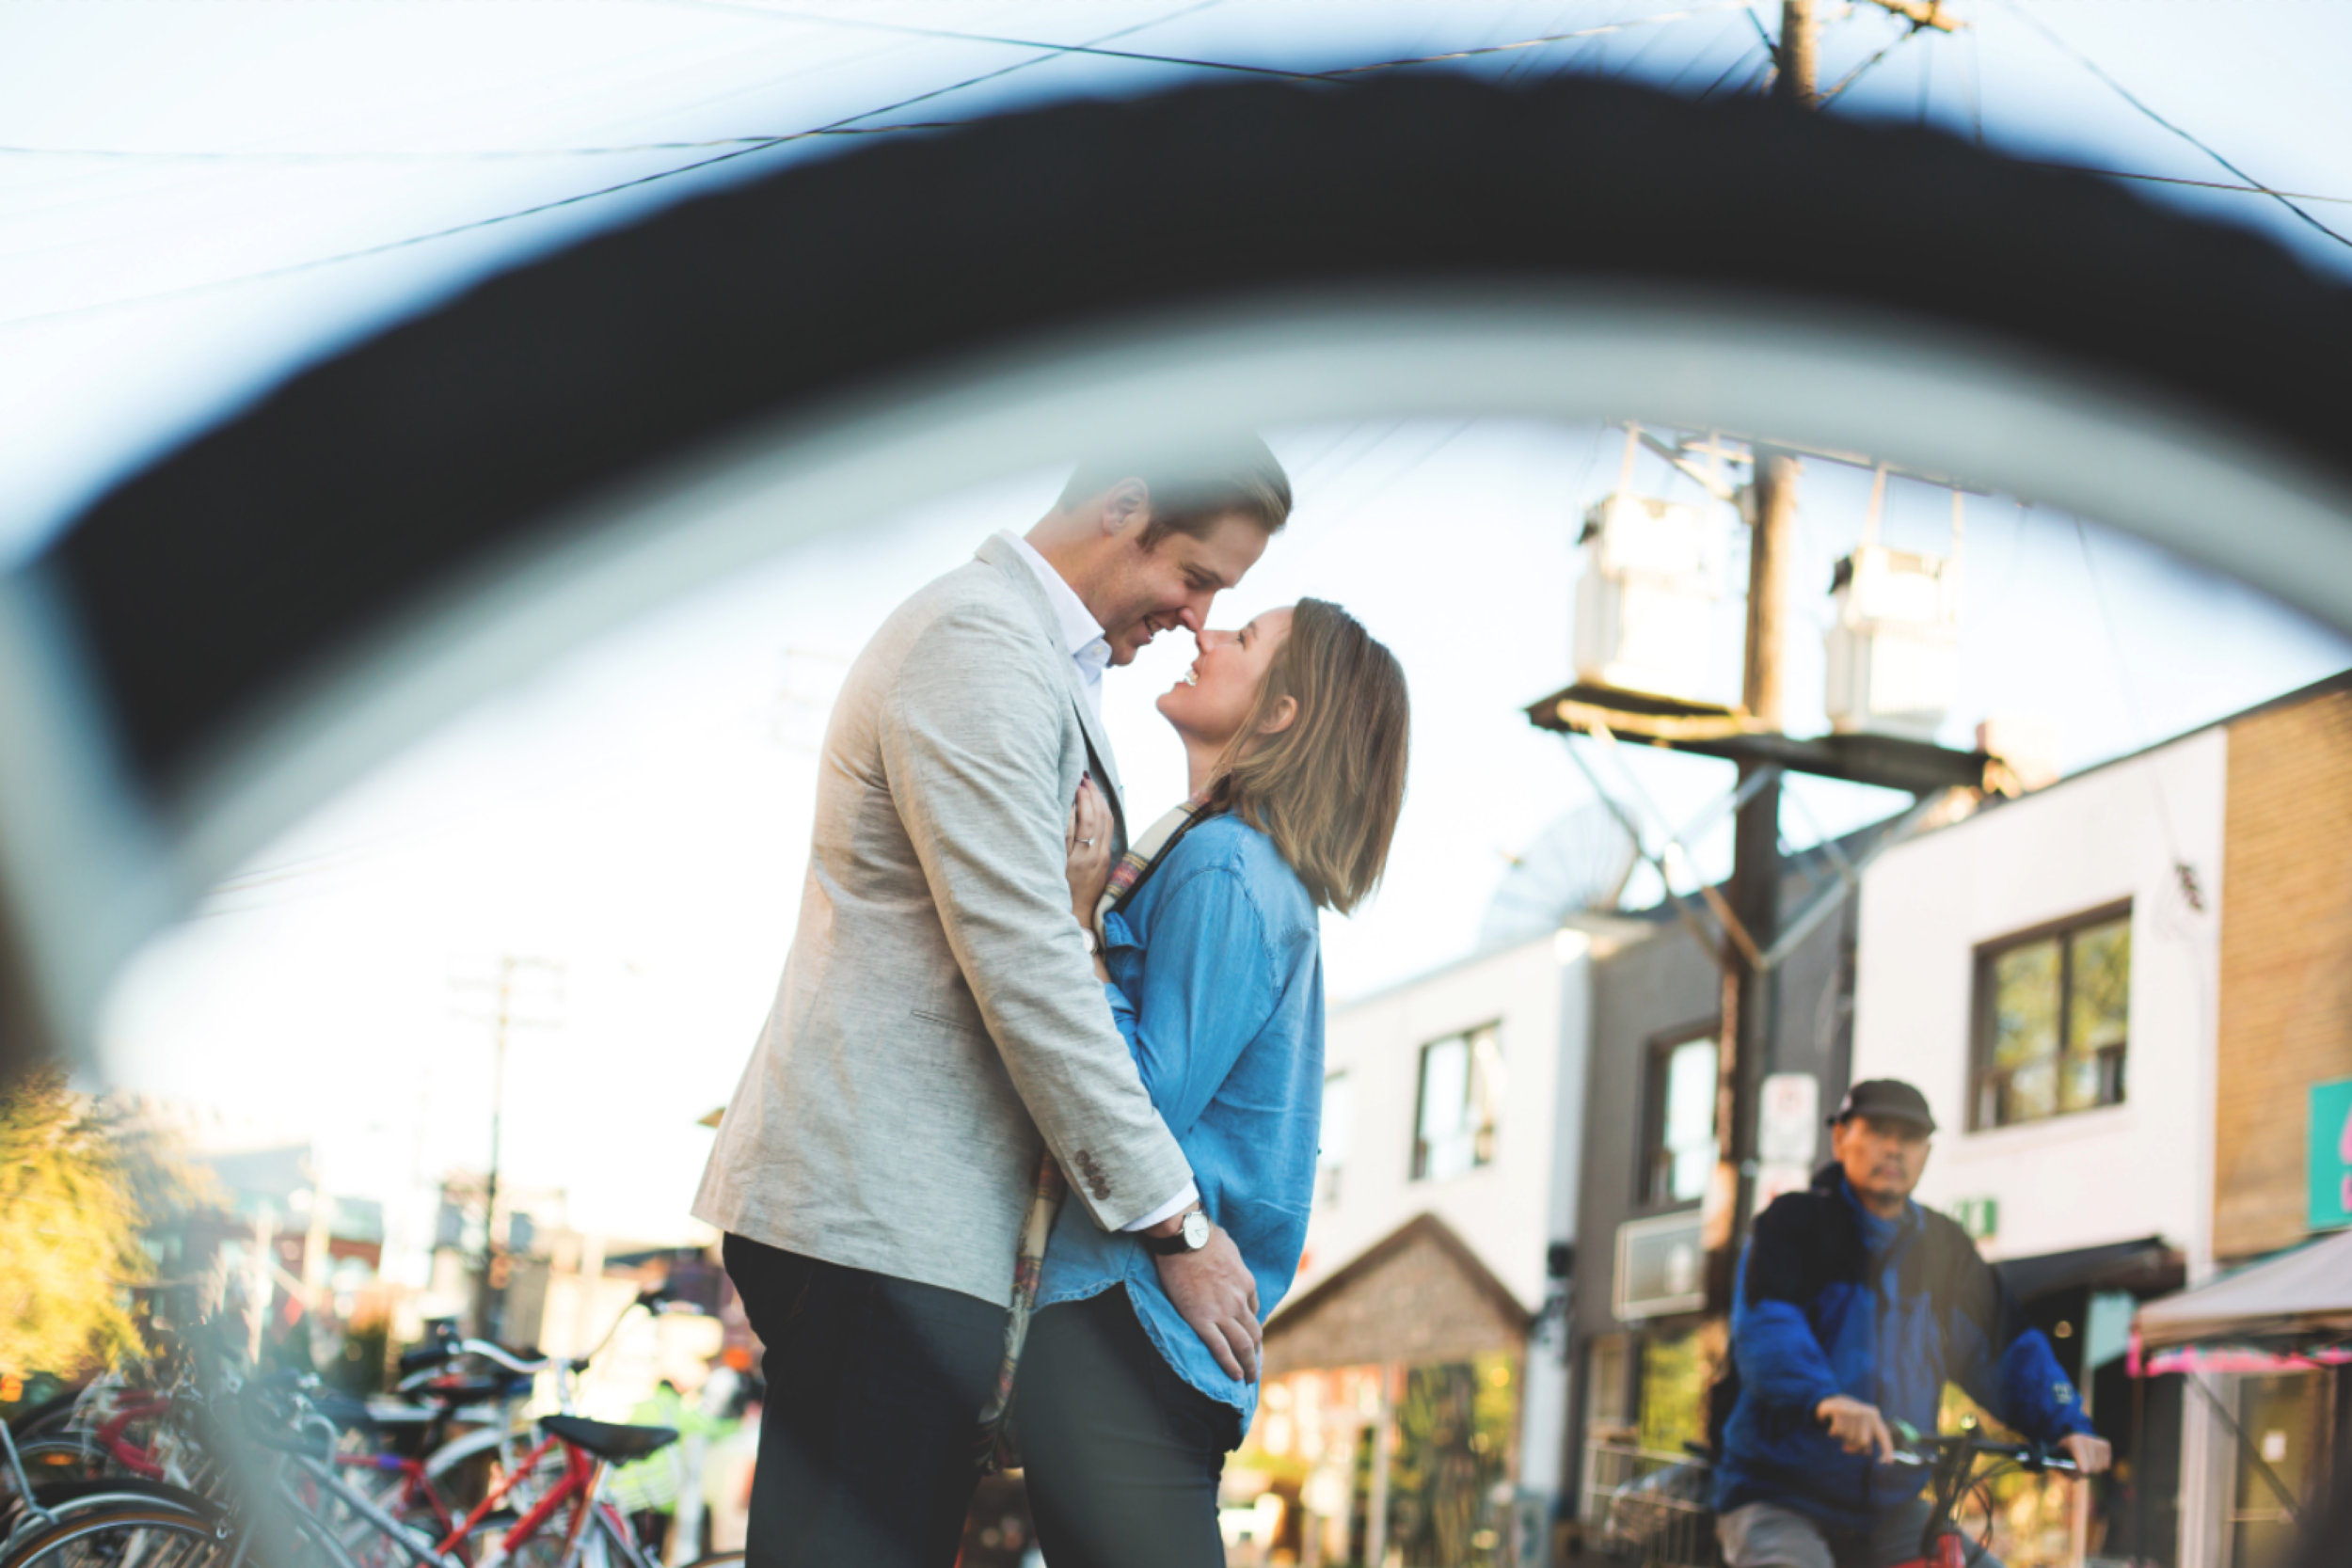 Engagement-Session-Hamilton-Burlington-Oakville-Niagara-Toronto-Wedding-Photographer-Engaged-Photography-Urban-Engaged-Downtown-Golden-Hour-Moments-by-Lauren-Photo-Image-11.png